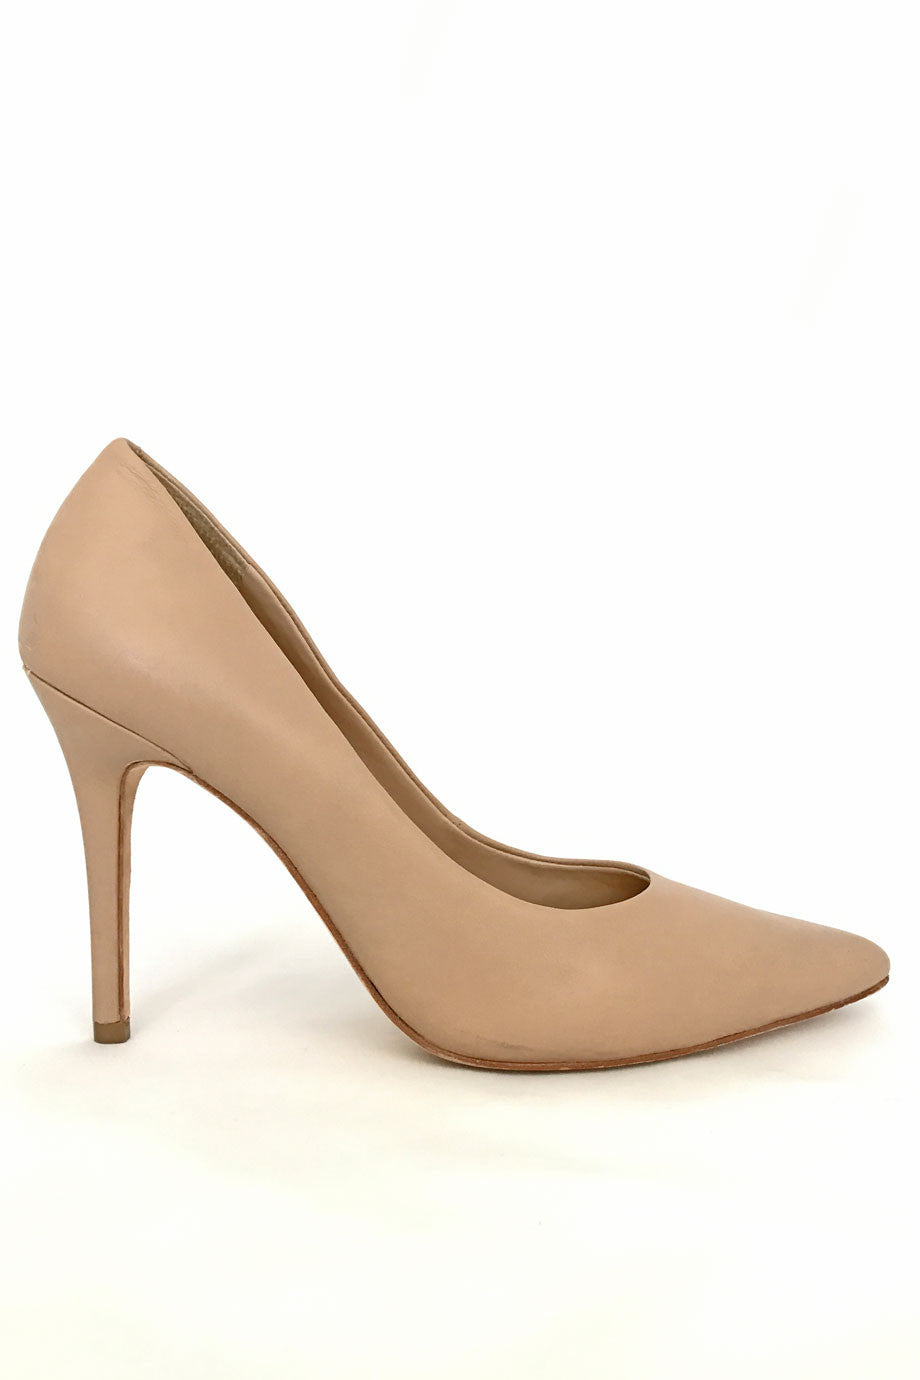 BCBG Max Azria Nude Leather Opia Pointed Toe Pumps / Sz 8B - Style Therapy  - 2